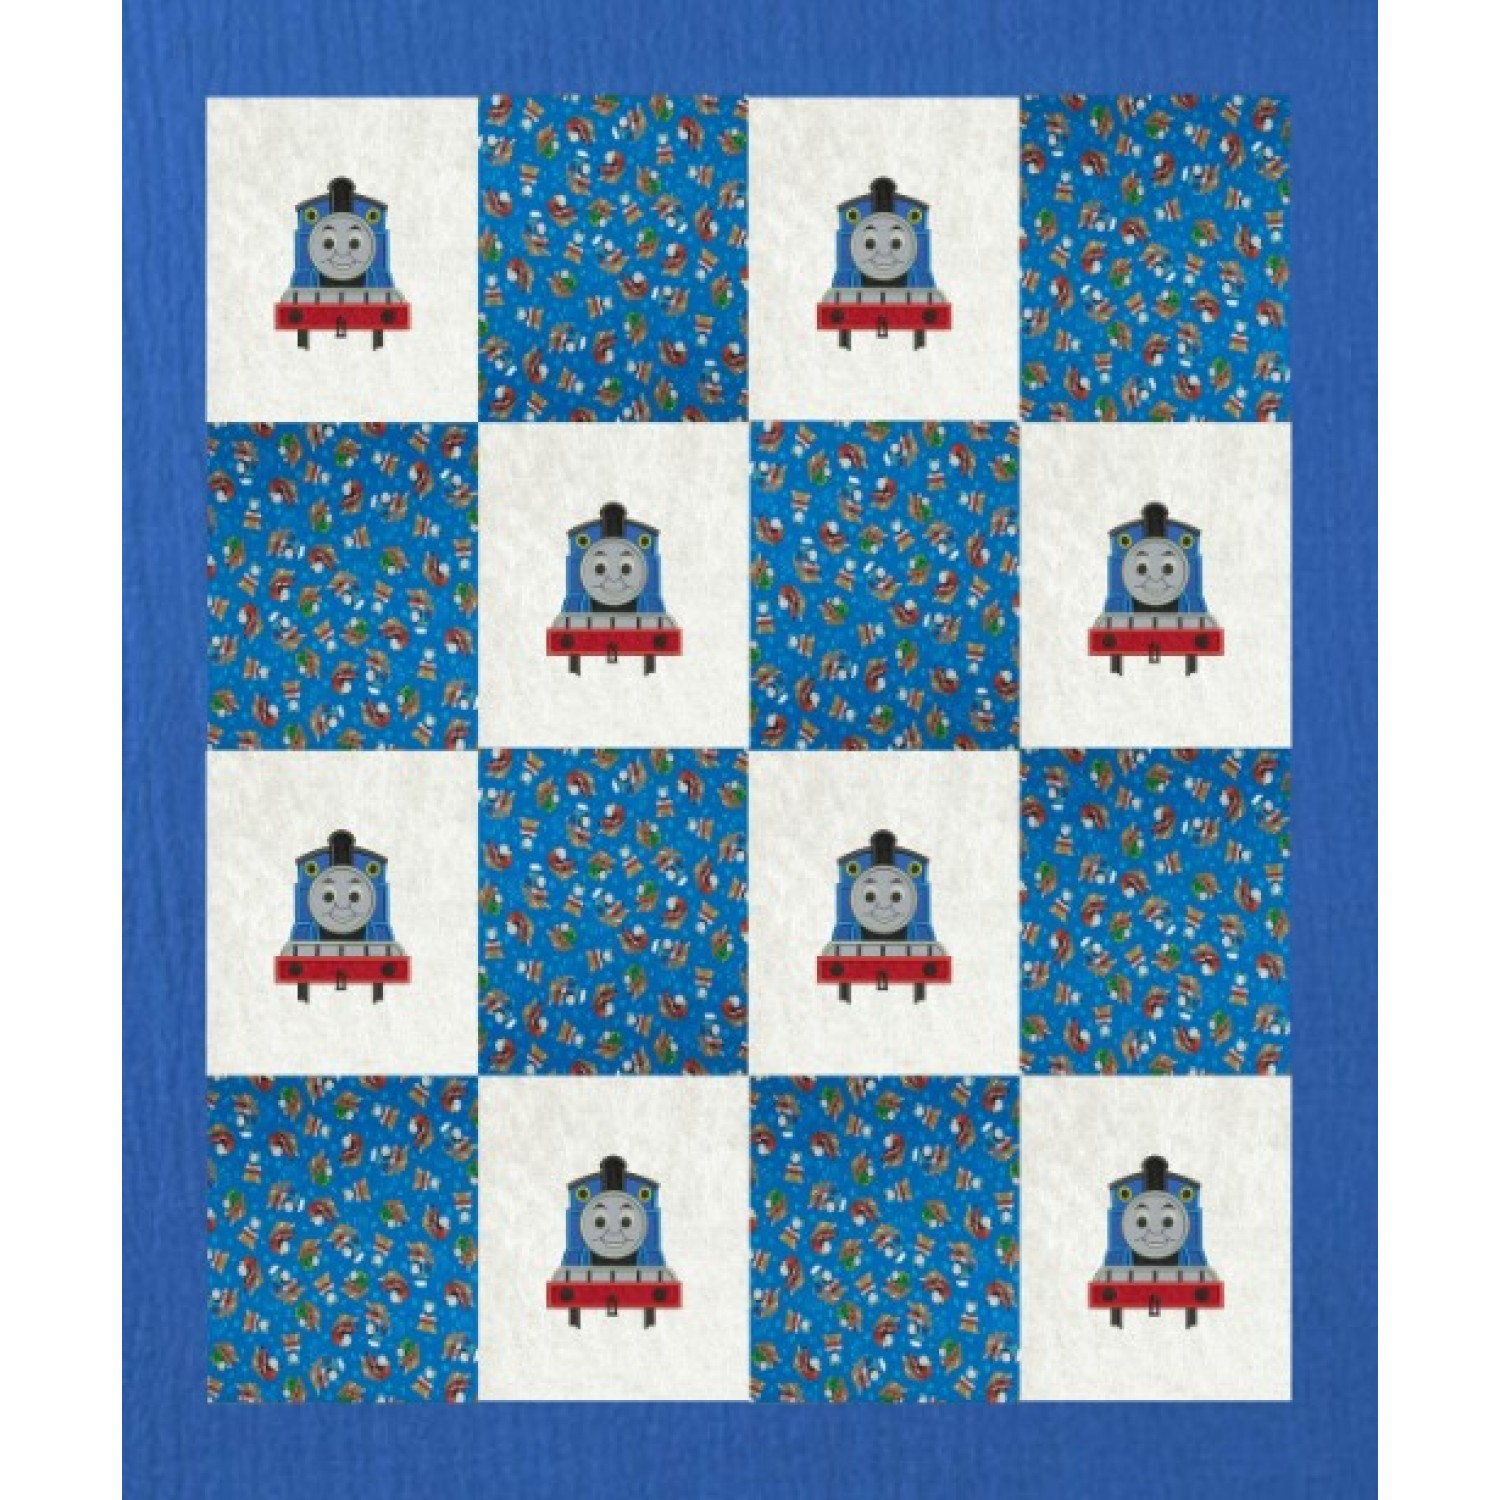 thomas the train applique design embroidery